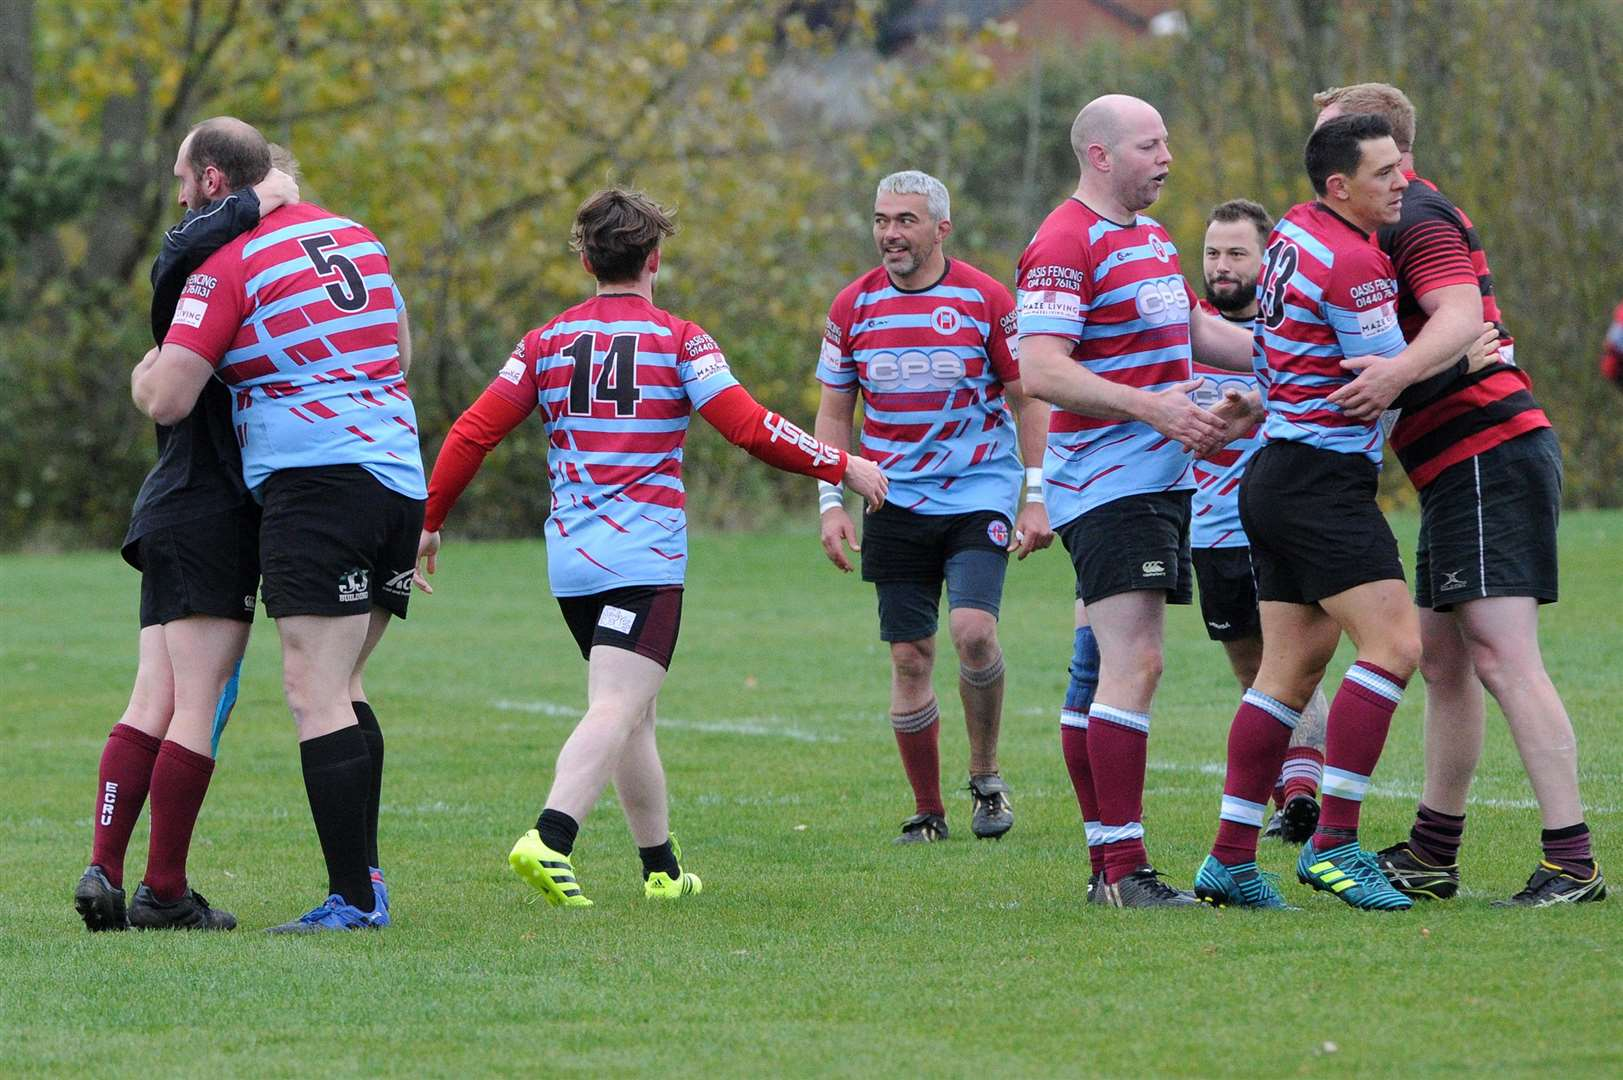 RUGBY - Haverhill v Mildenhall & Red Lodge..Pictured: ...PICTURE: Mecha Morton... .. (5056930)